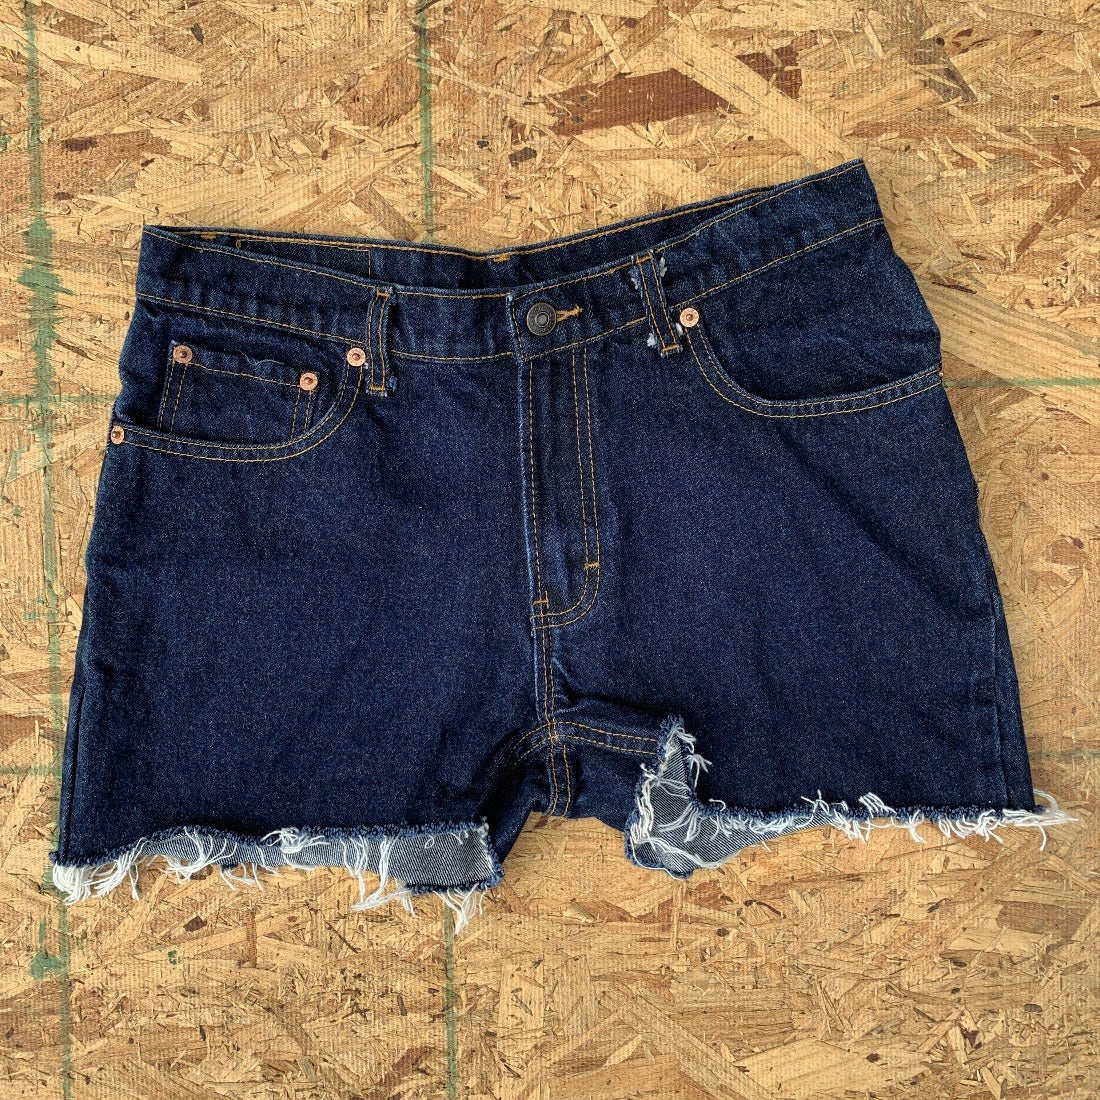 80s Jordache Dark Wash Indigo Denim Cutoff Shorts | 30